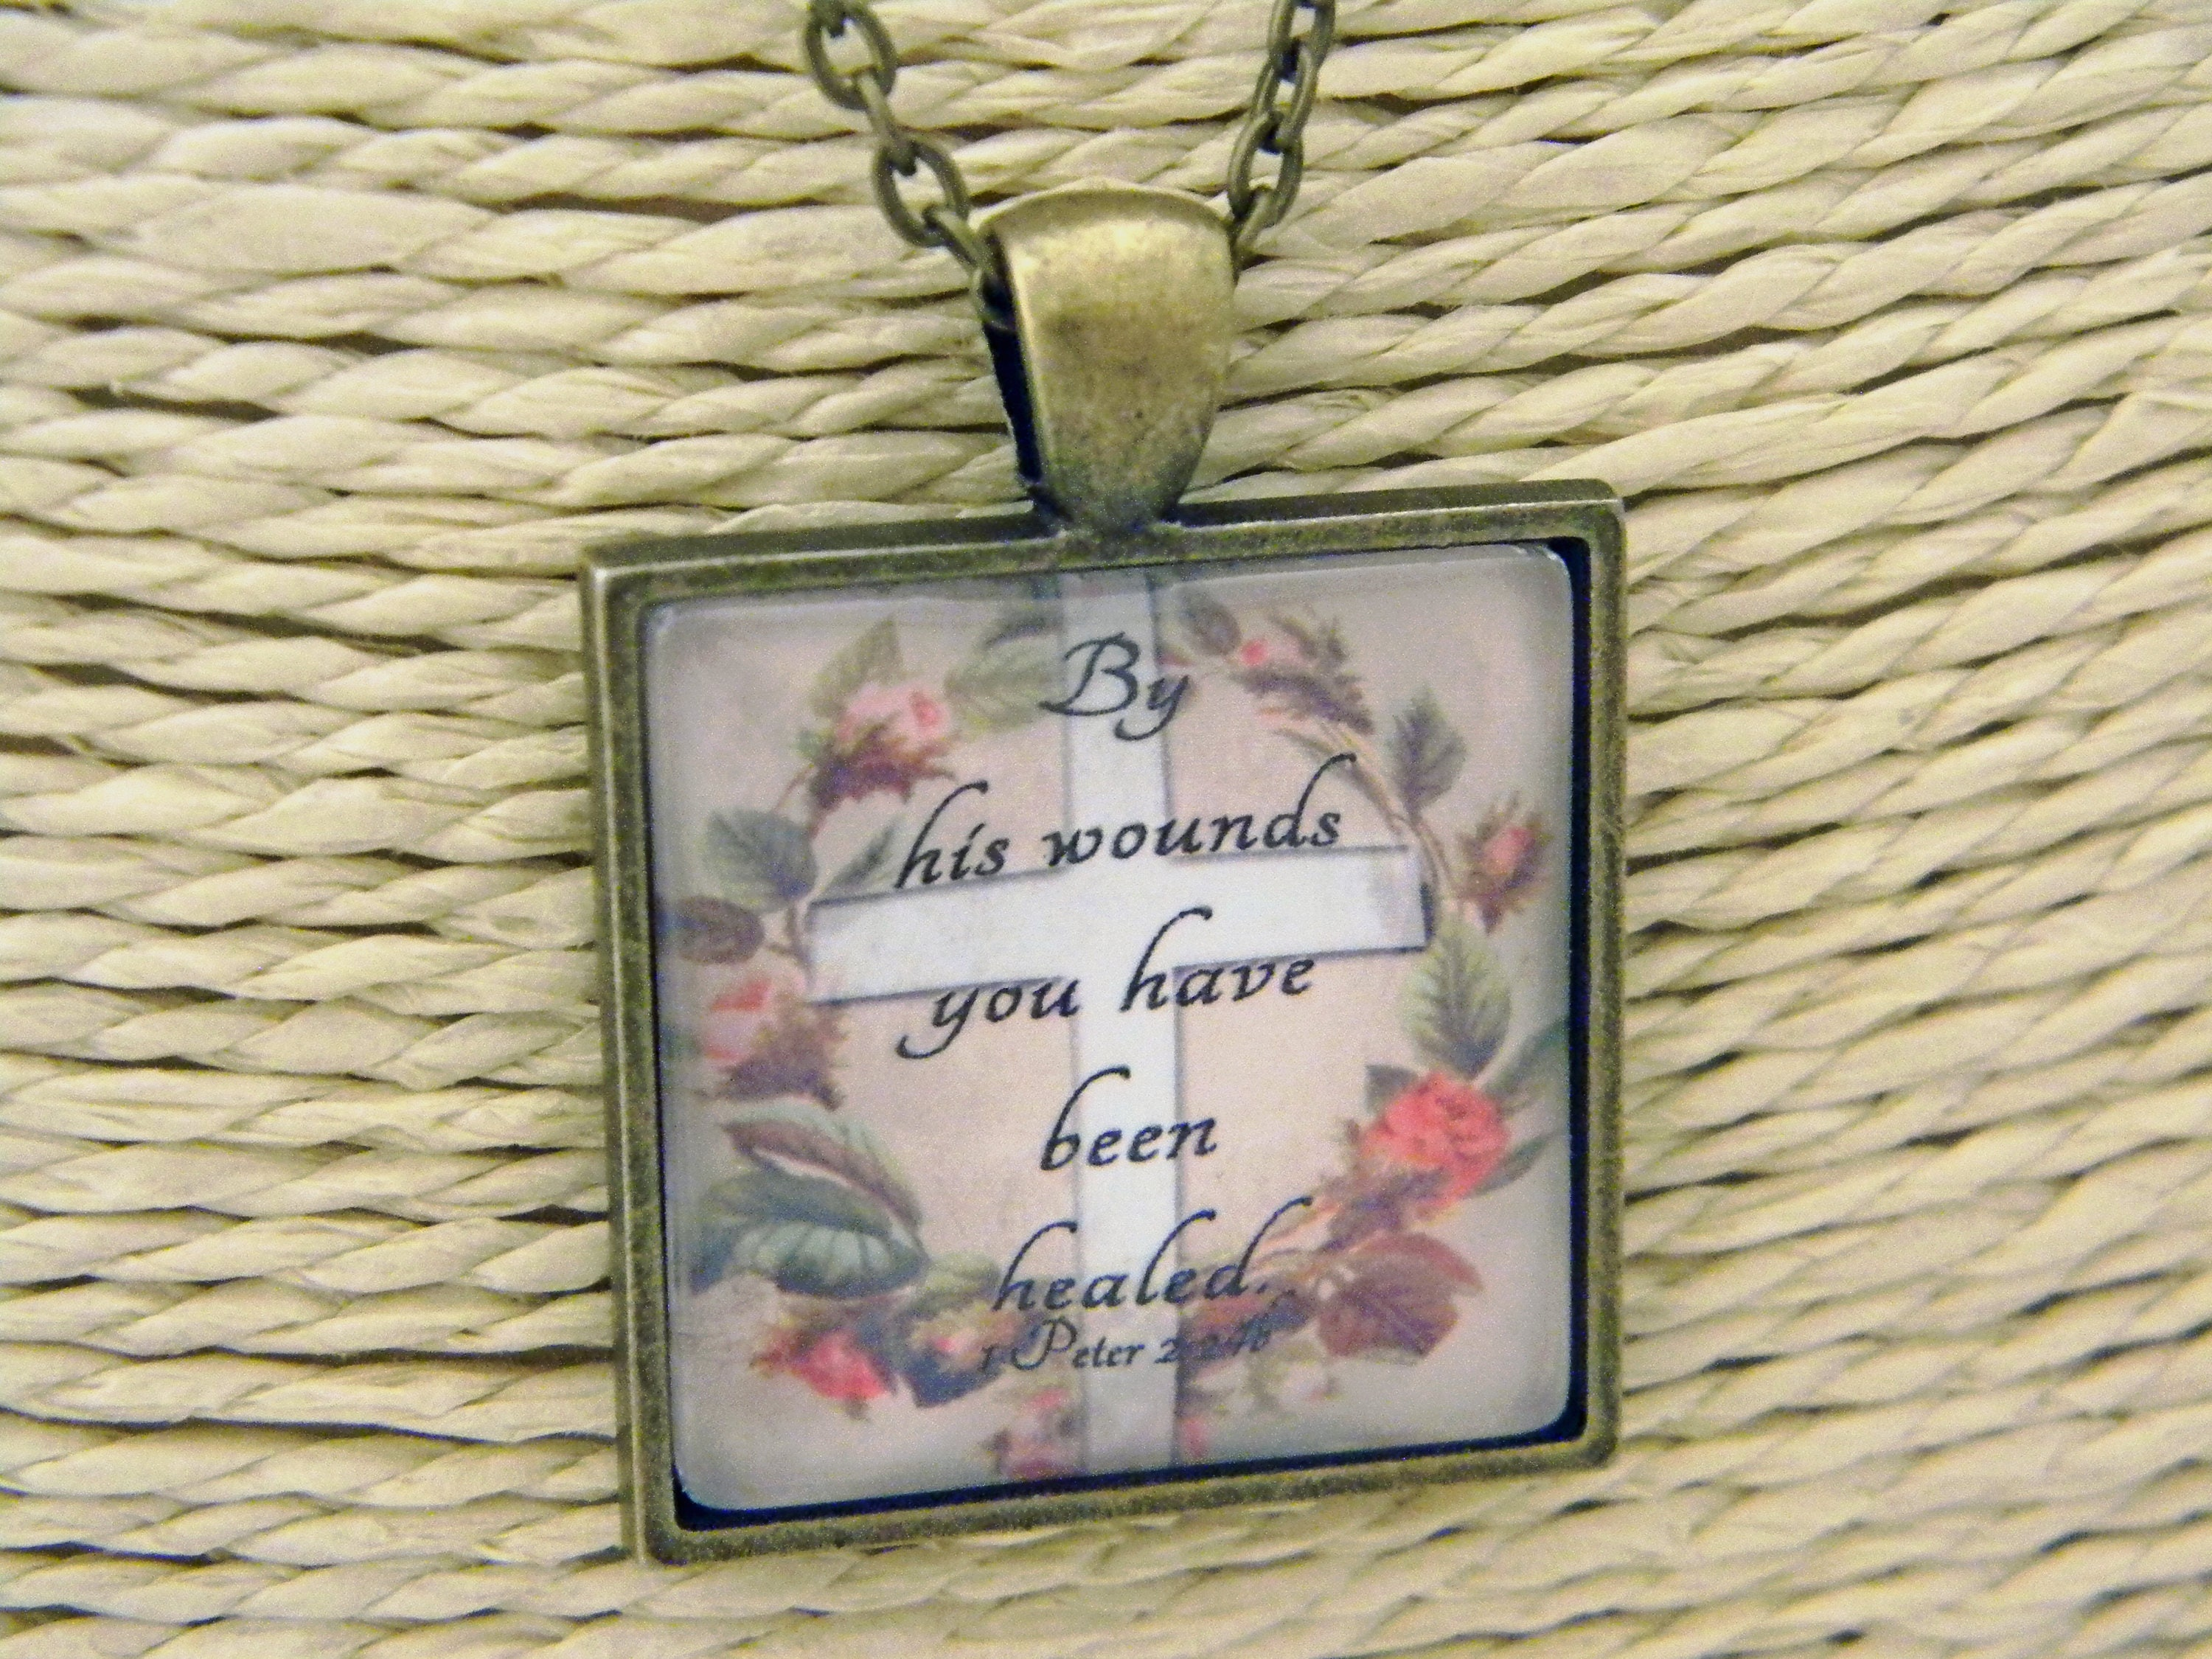 Esv scripture cabochon pendant necklace christian gift bible verse esv scripture cabochon pendant necklace christian gift bible verse 1 peter 224b by his wounds you have been healed gift boxed ready negle Images